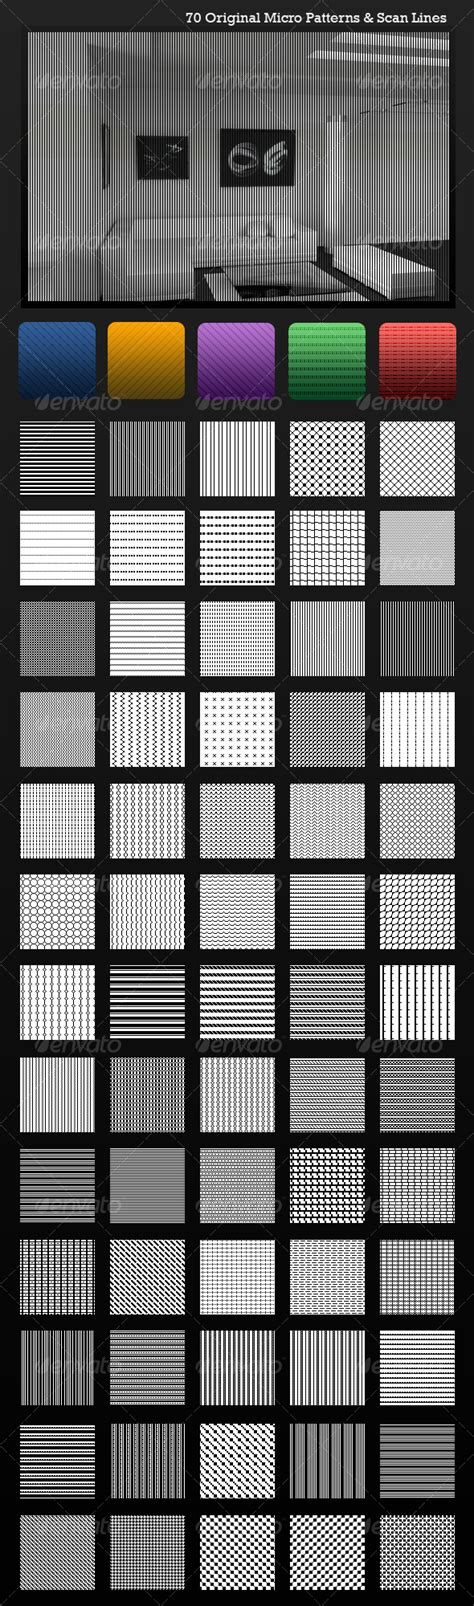 scan line pattern photoshop ultimate scanlines micro patterns 70 pack graphicriver